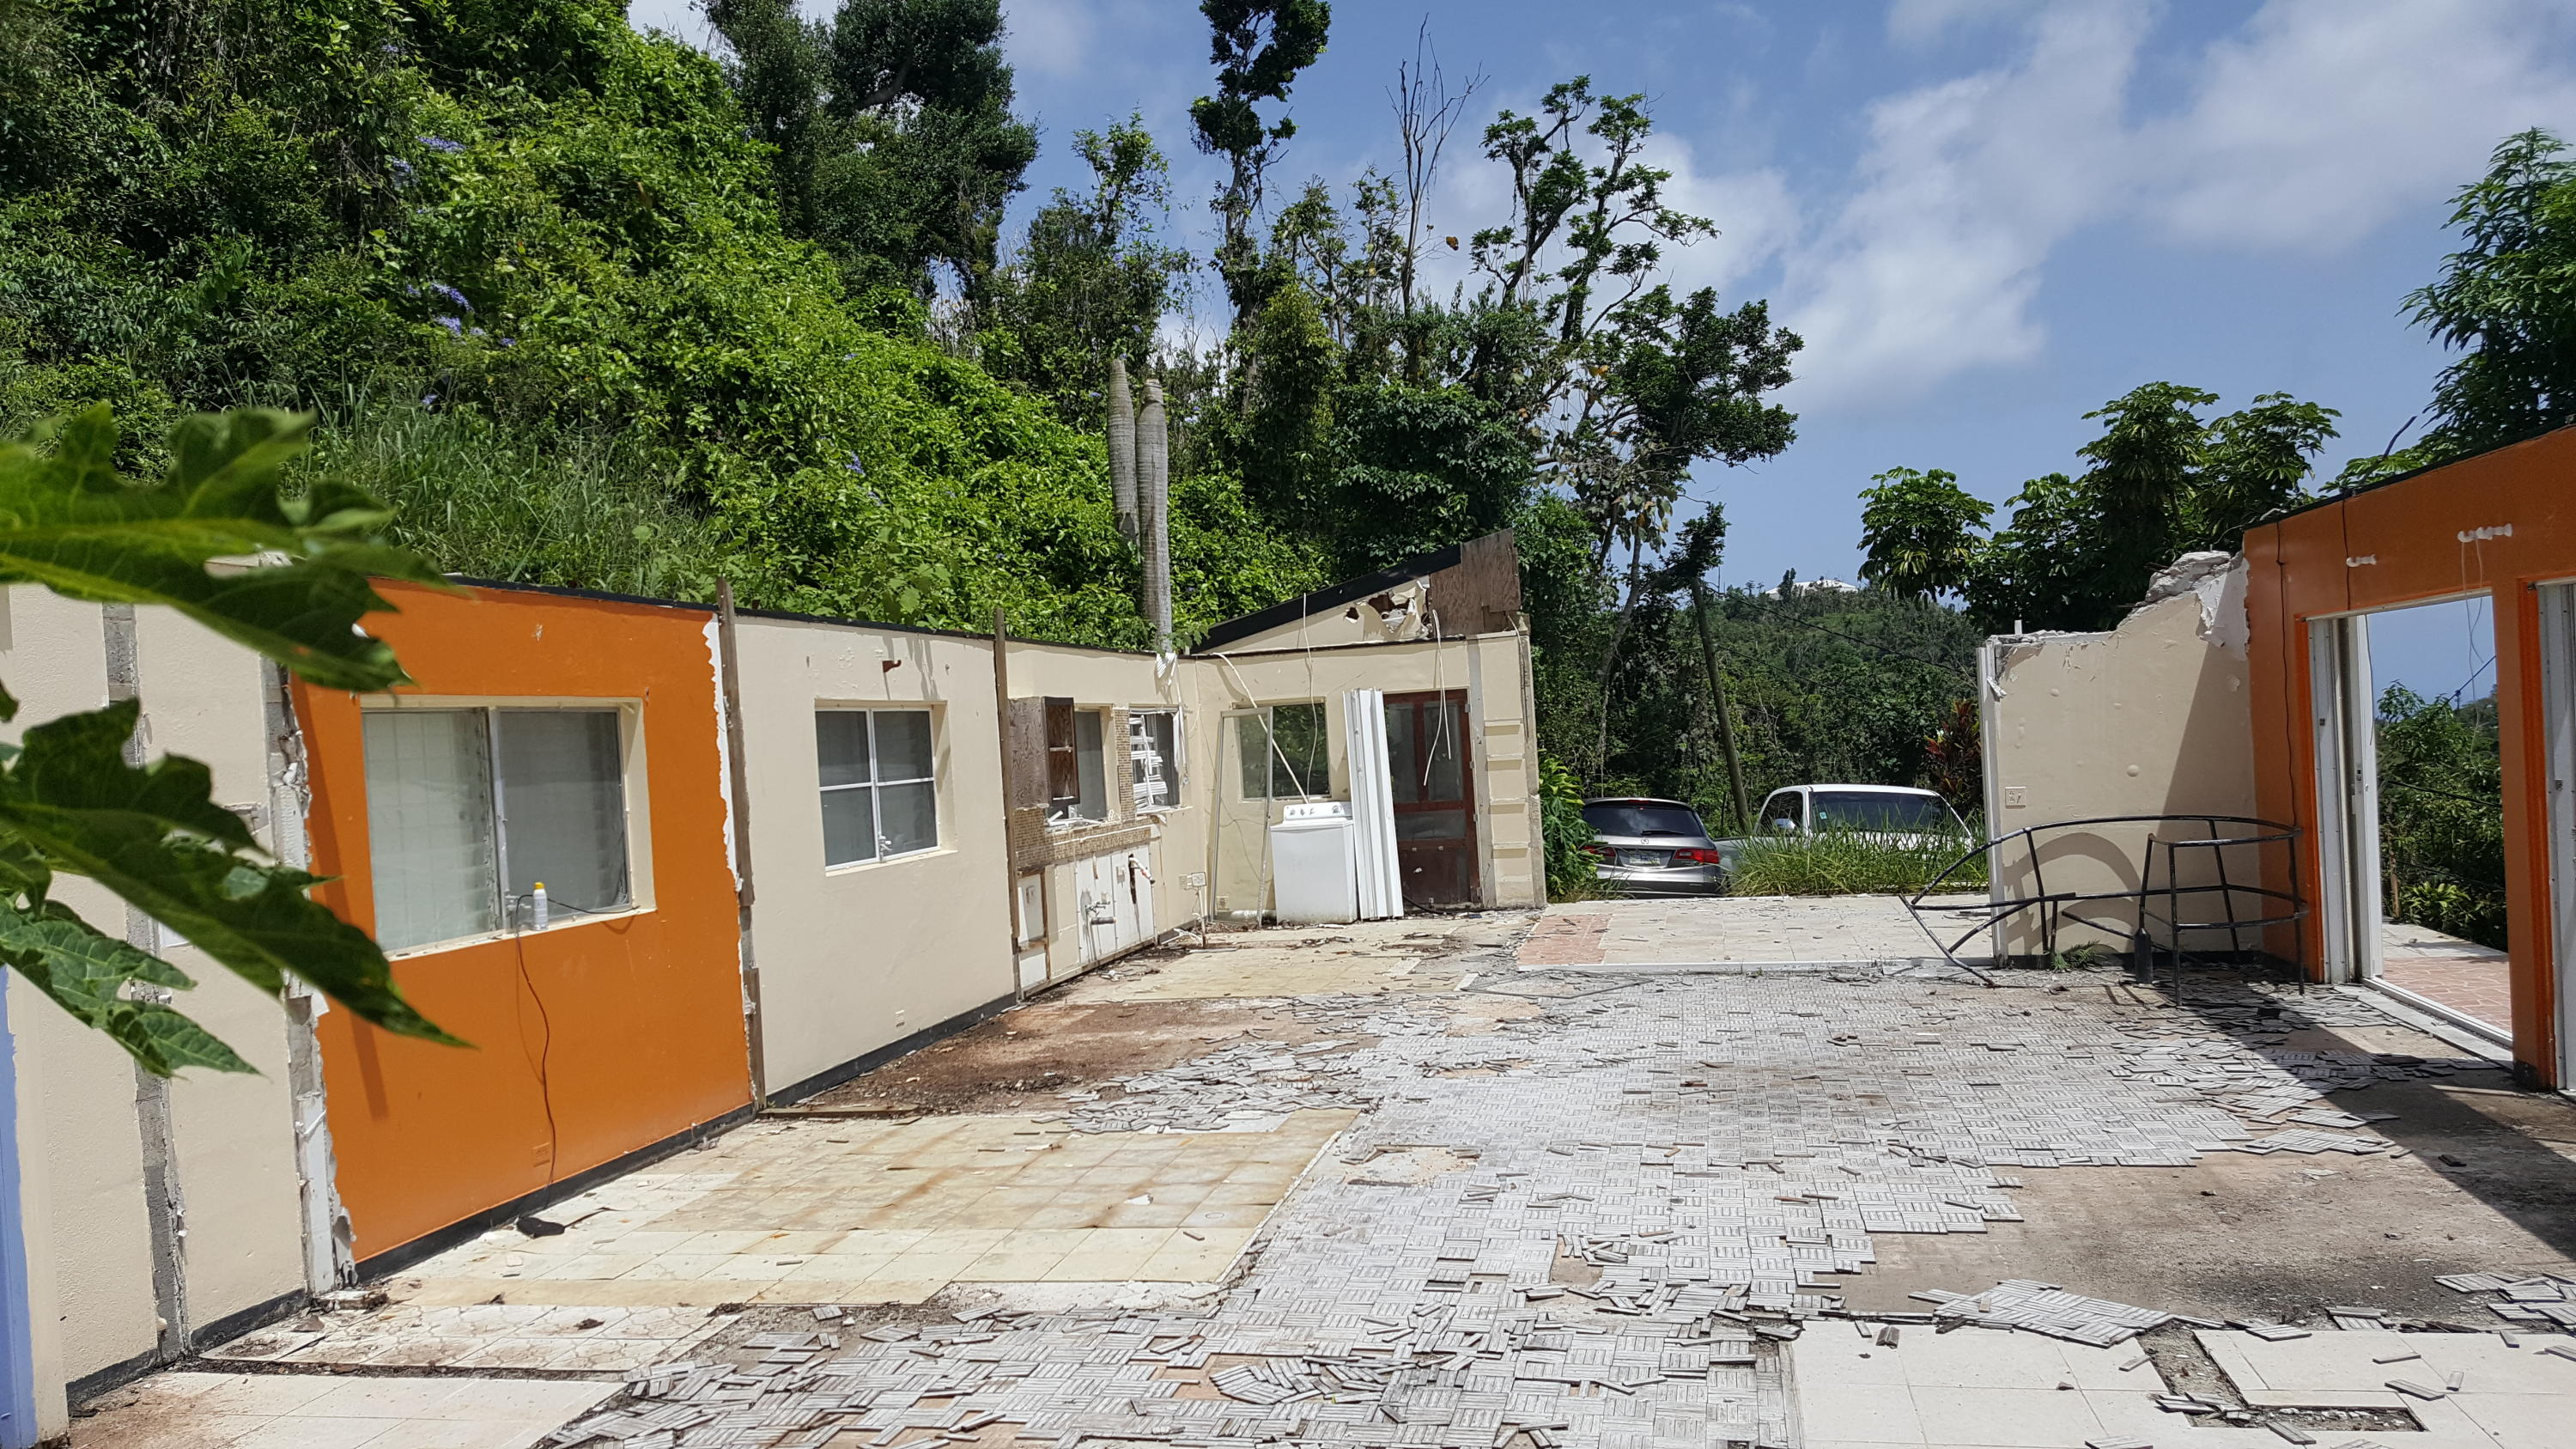 Single Family Home for Sale at 7-3 Lilliendal & Marienhoj LNS 7-3 Lilliendal & Marienhoj LNS St Thomas, Virgin Islands 00802 United States Virgin Islands